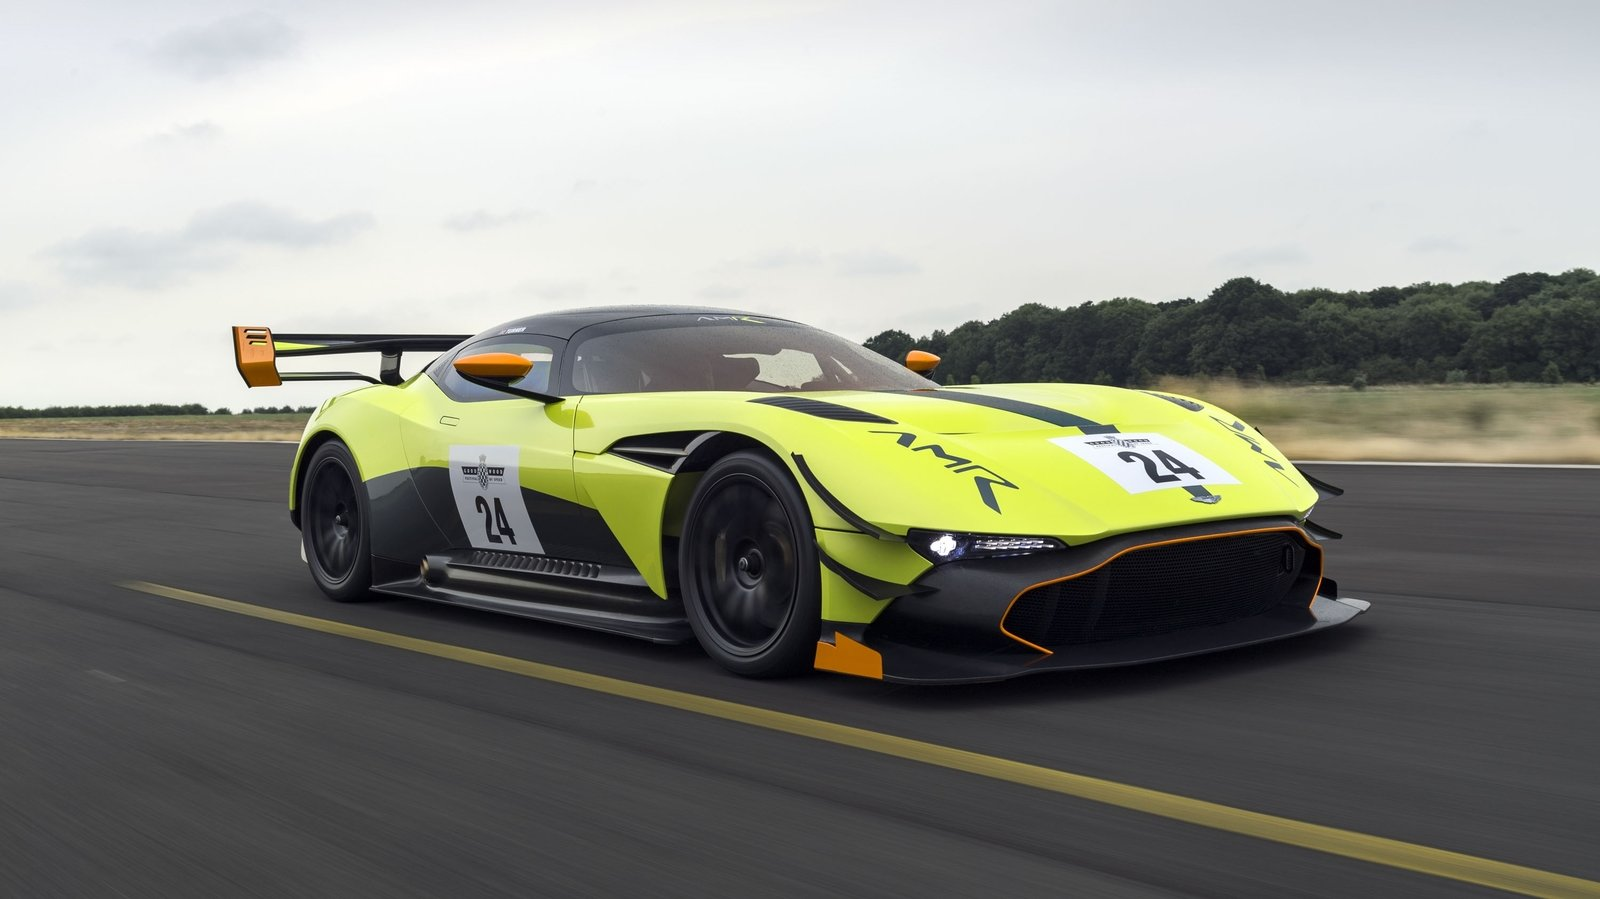 2018 aston martin vulcan amr pro top speed. Black Bedroom Furniture Sets. Home Design Ideas